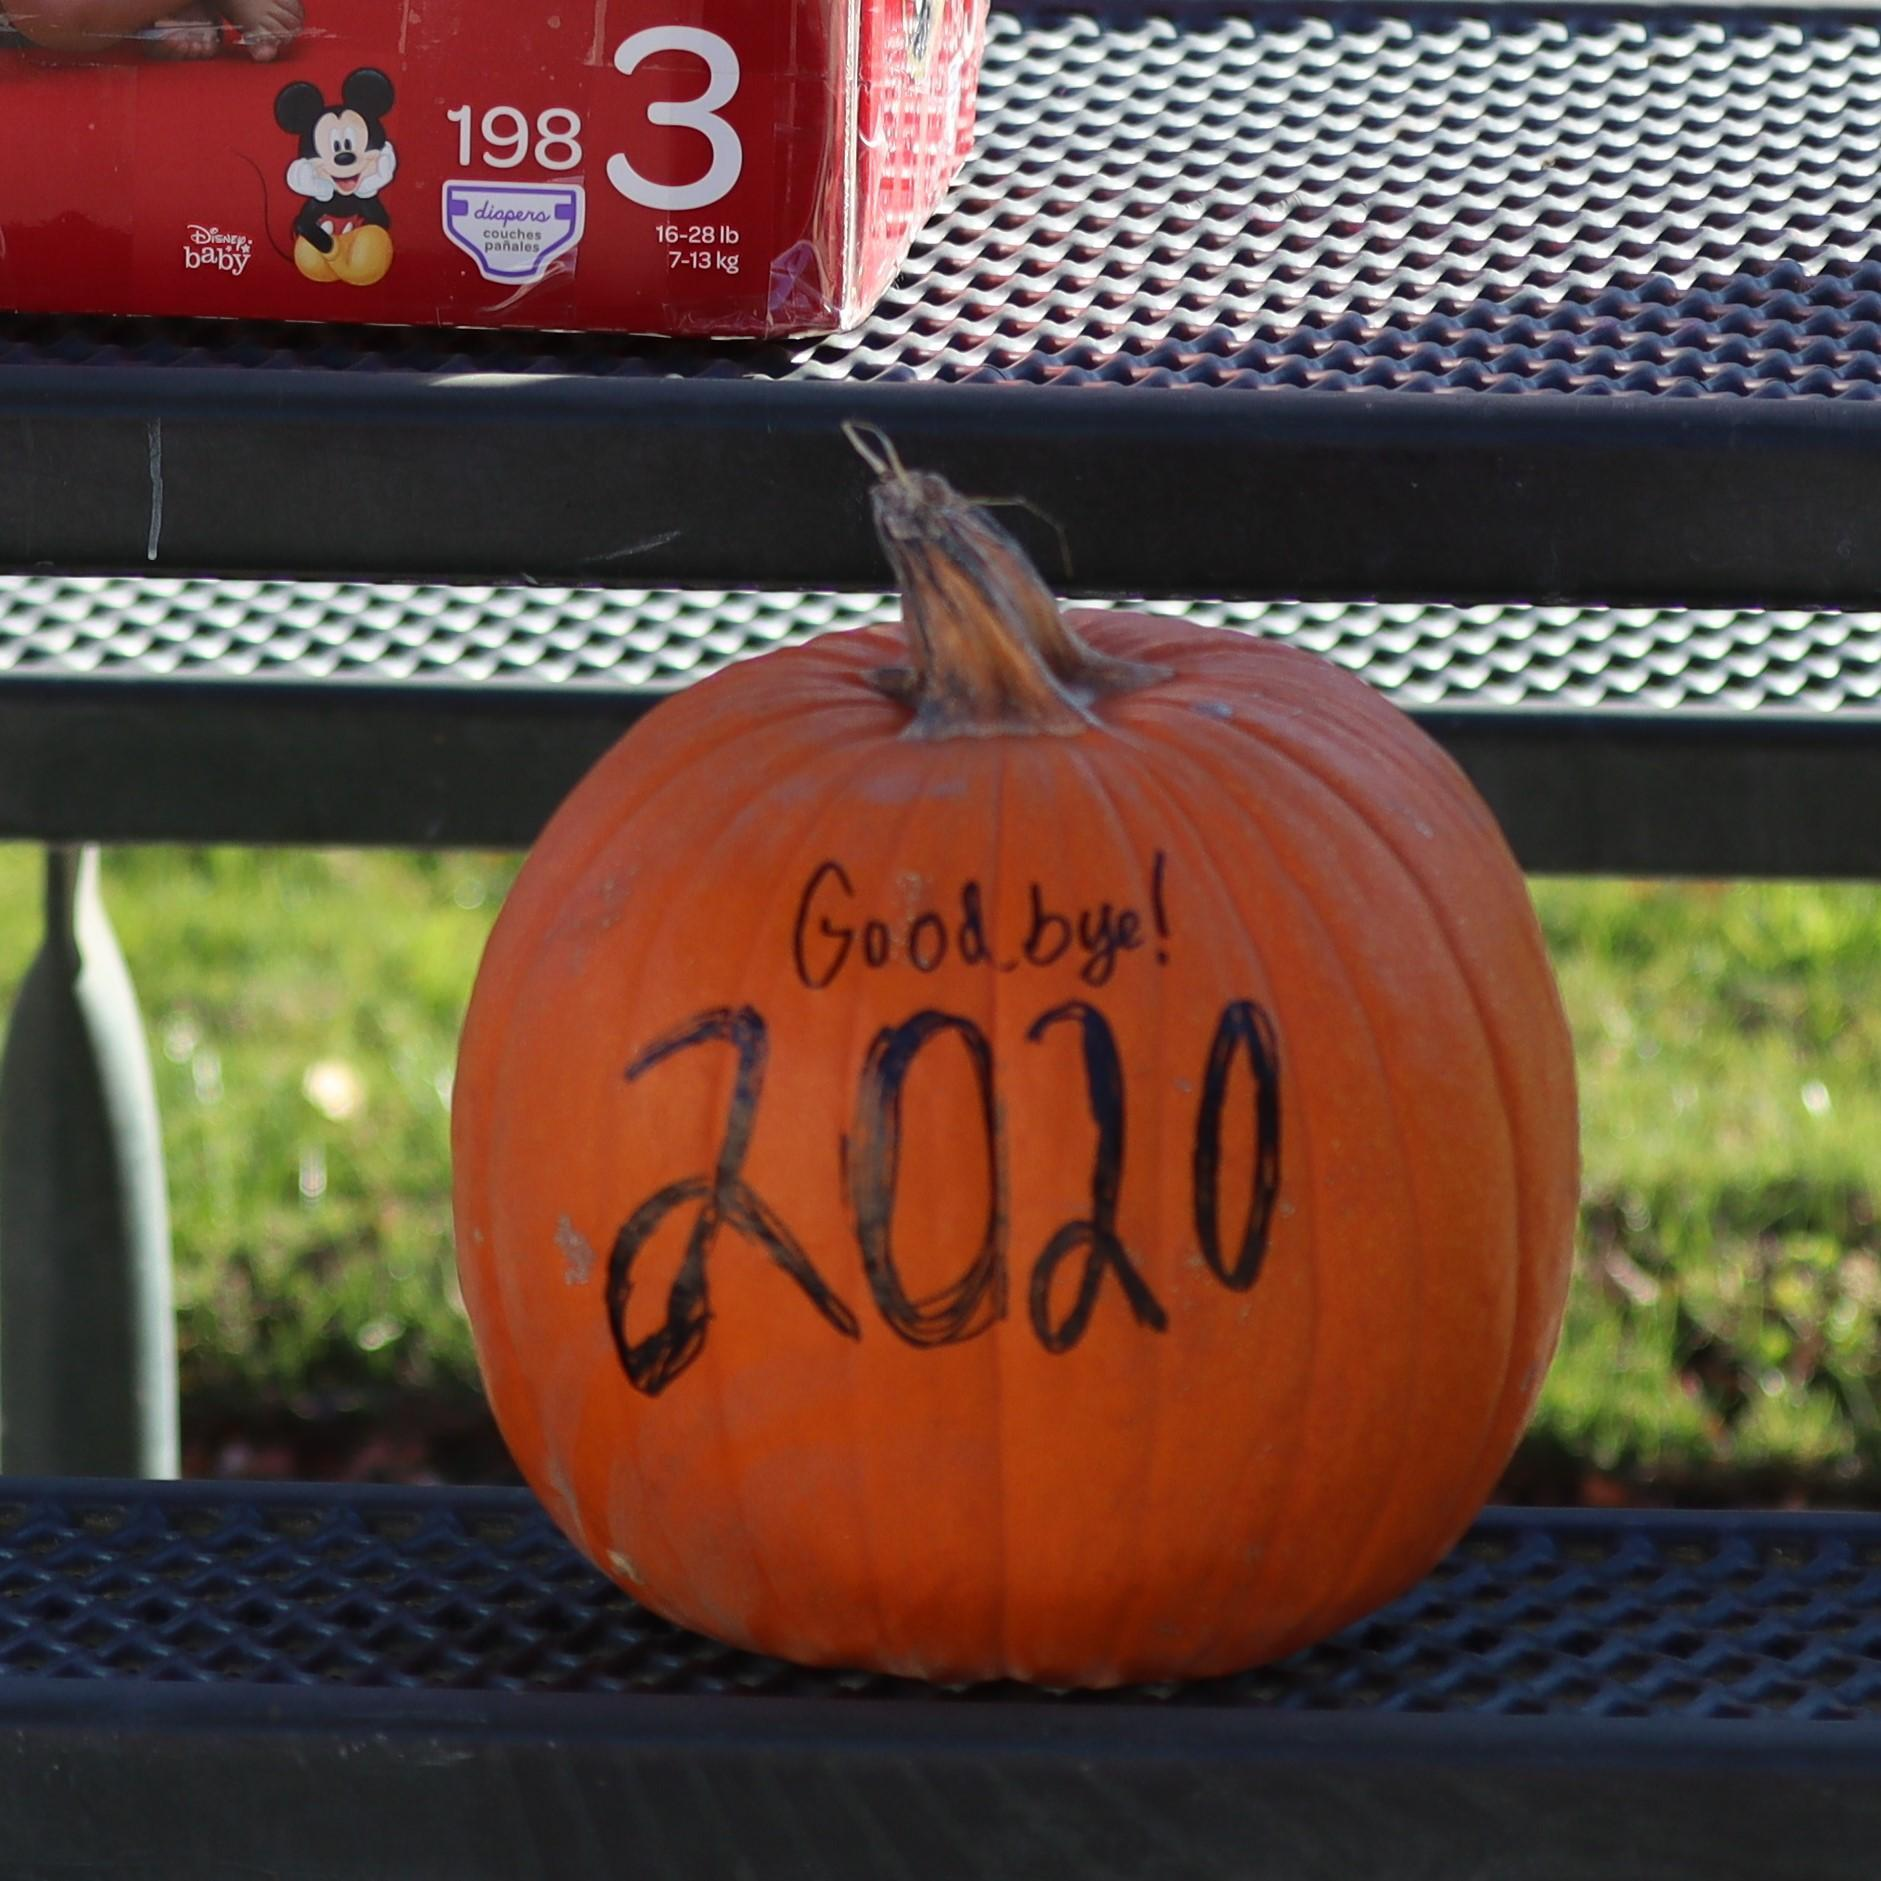 2020 pumpkin before being thrown at the ground.